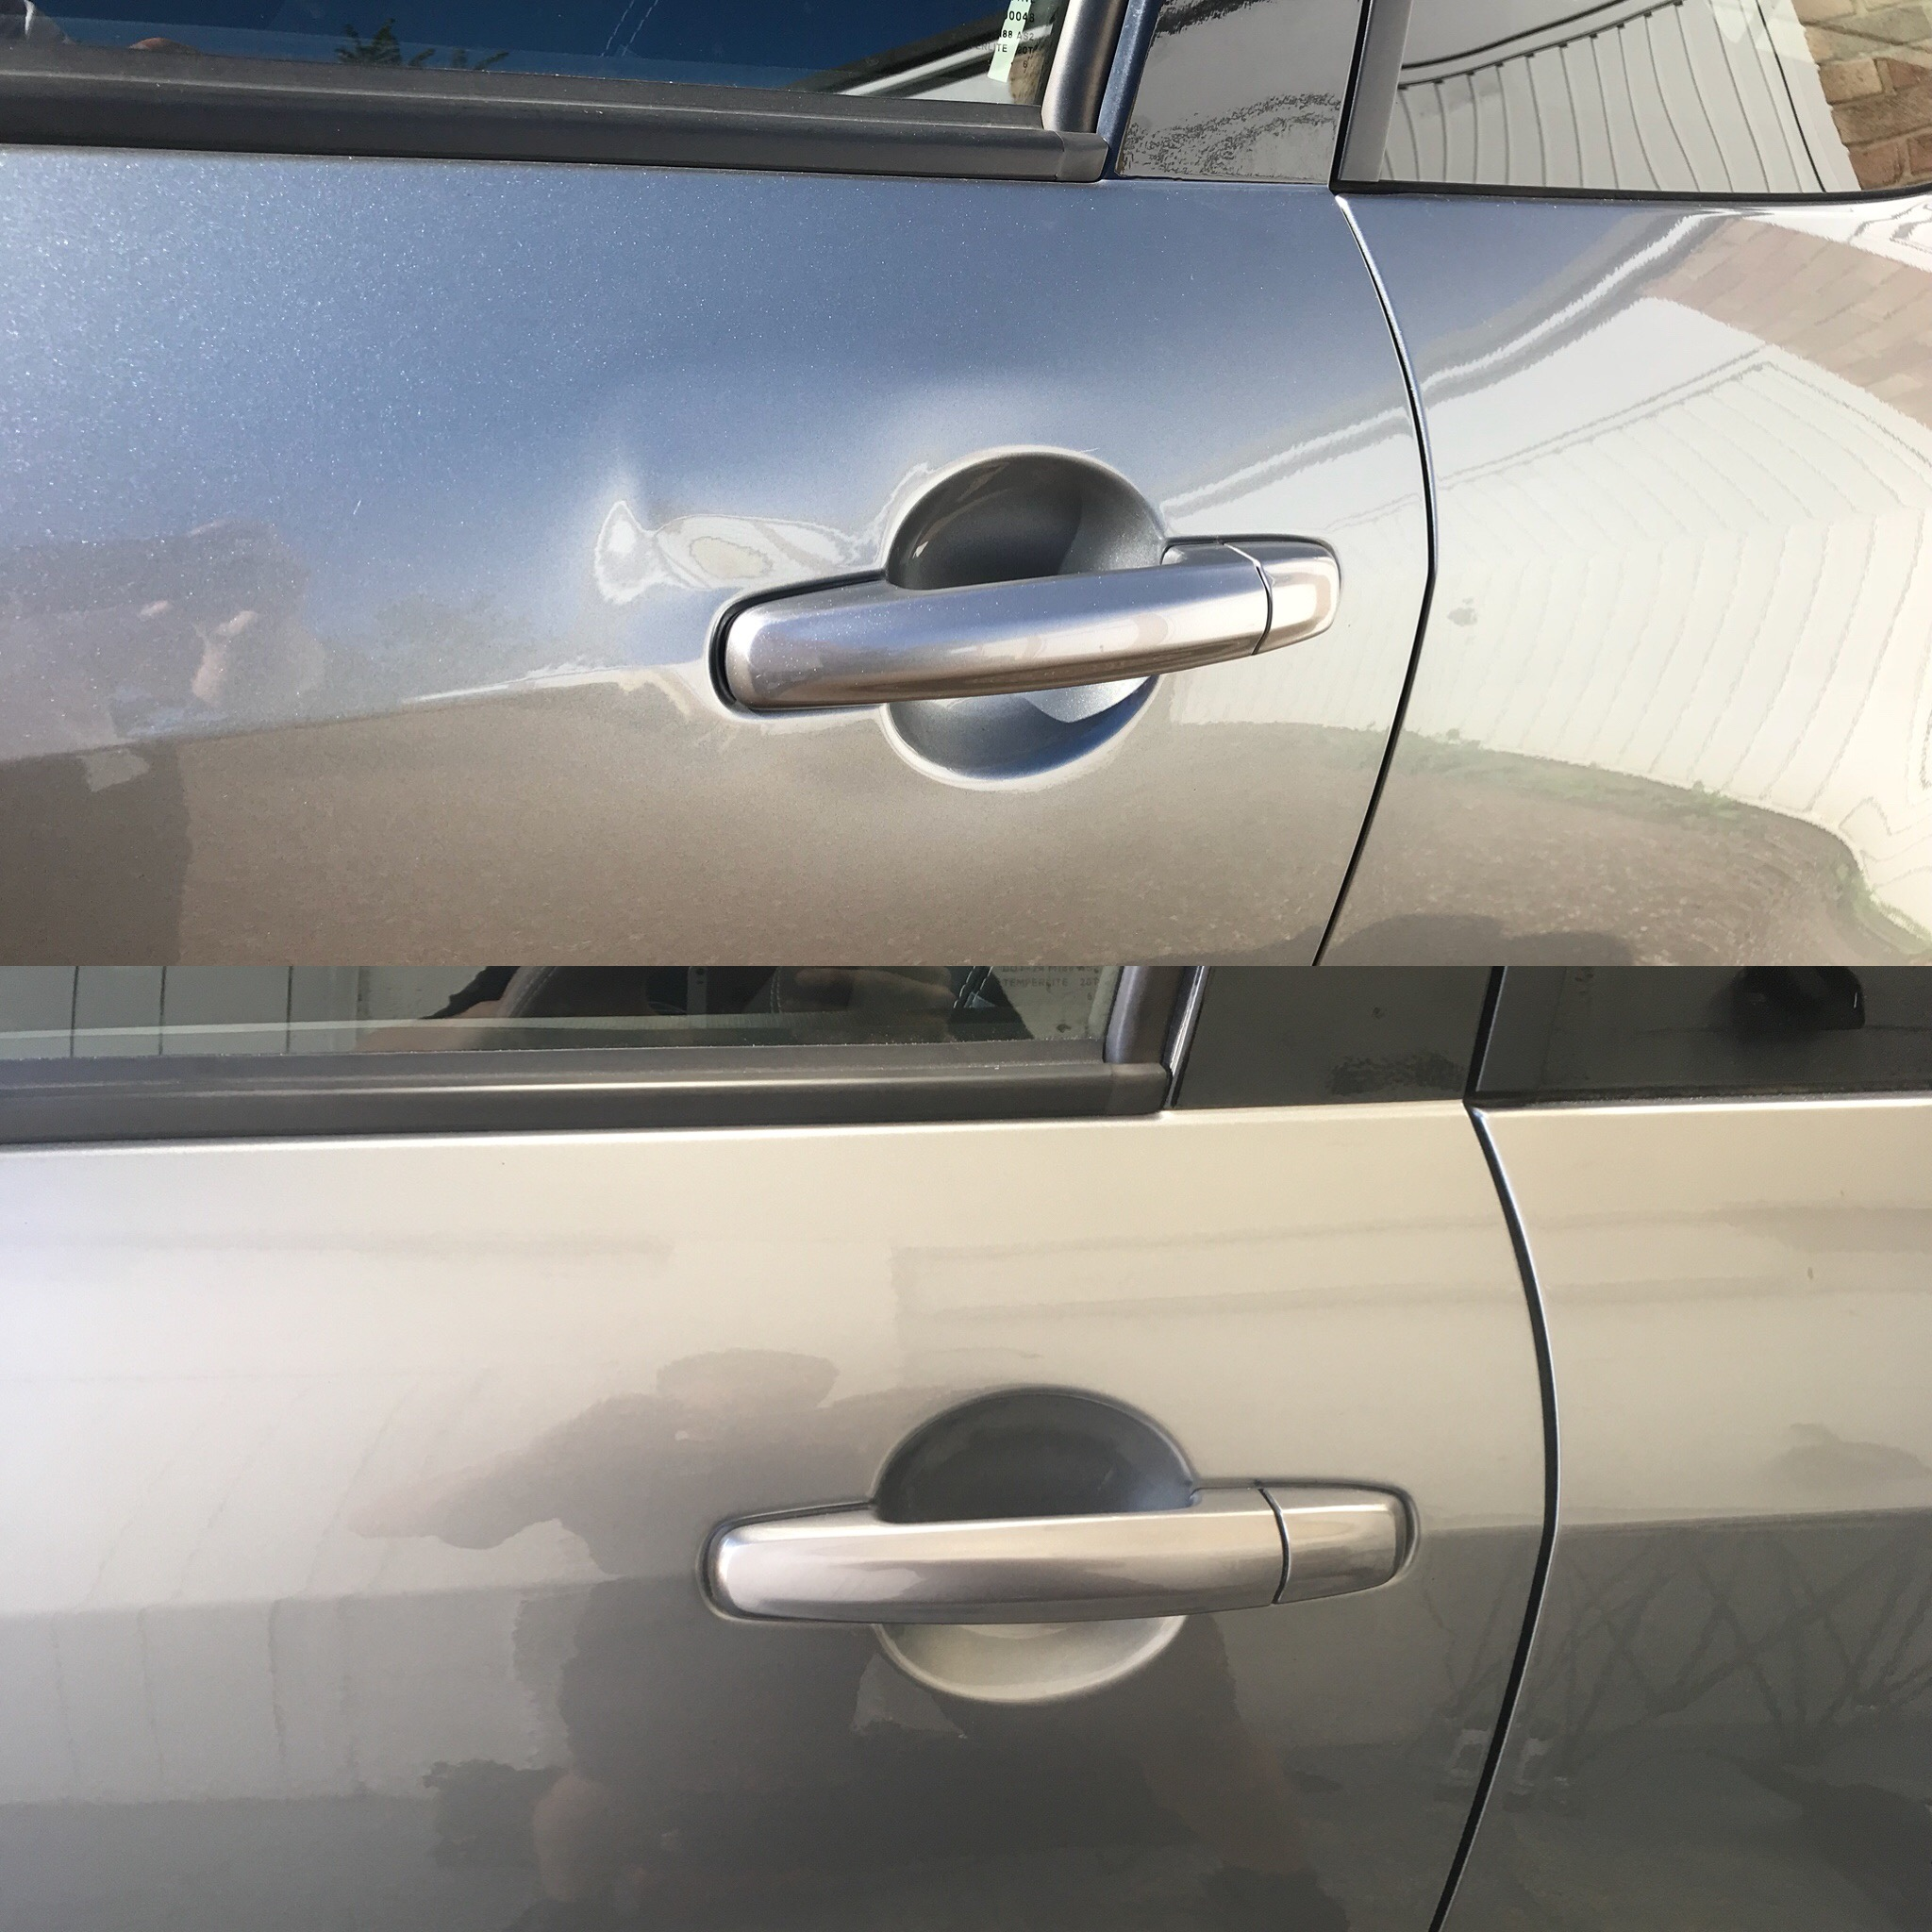 suzuki swift door repair